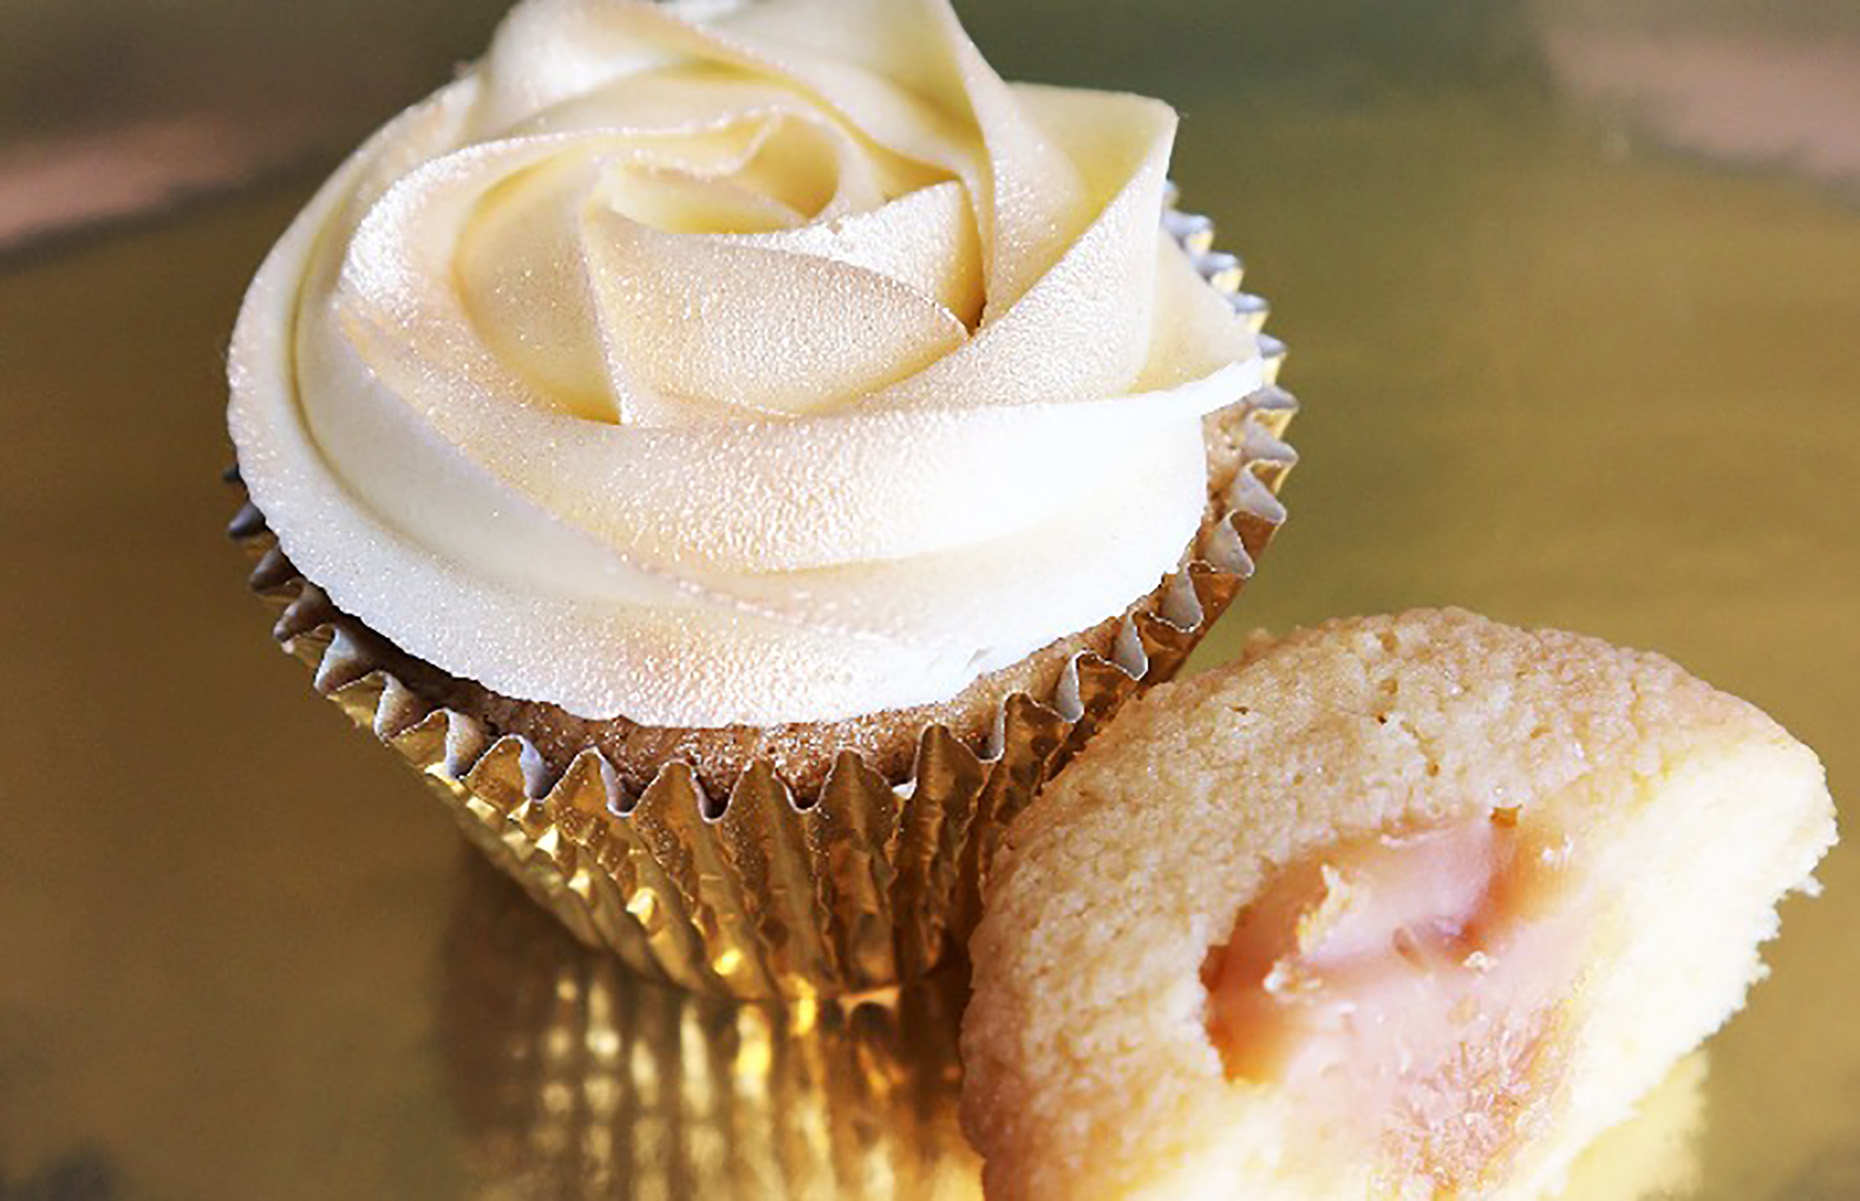 Honey and lemon cupcakes (Image: Jean-Christophe Novelli/loveFOOD)